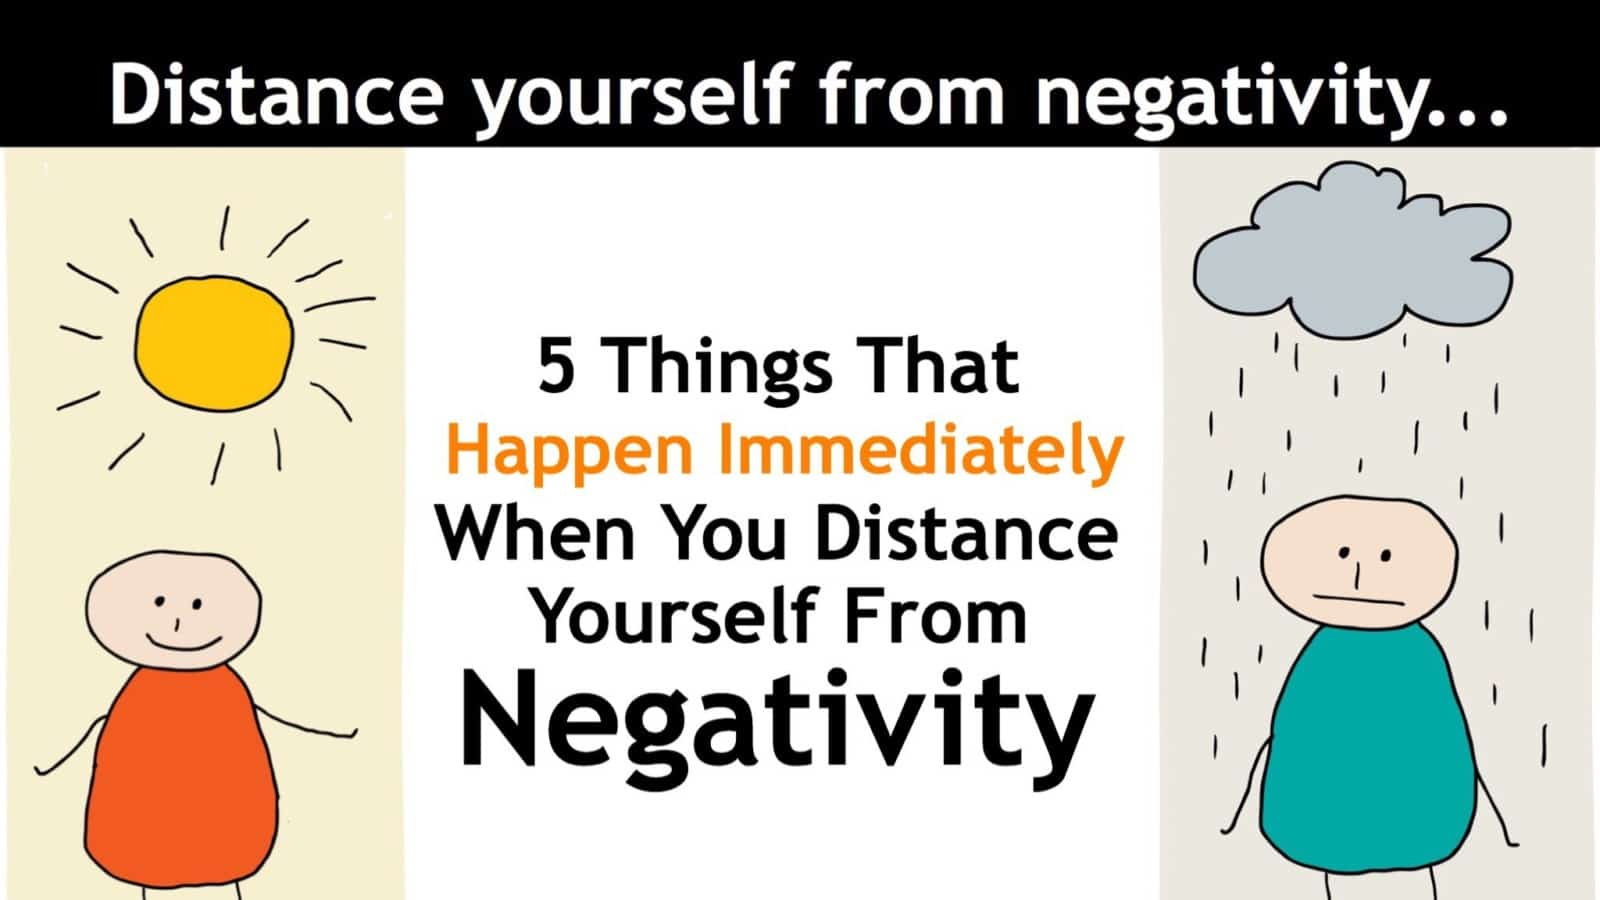 5 Positive Things That Immediately Happen When You